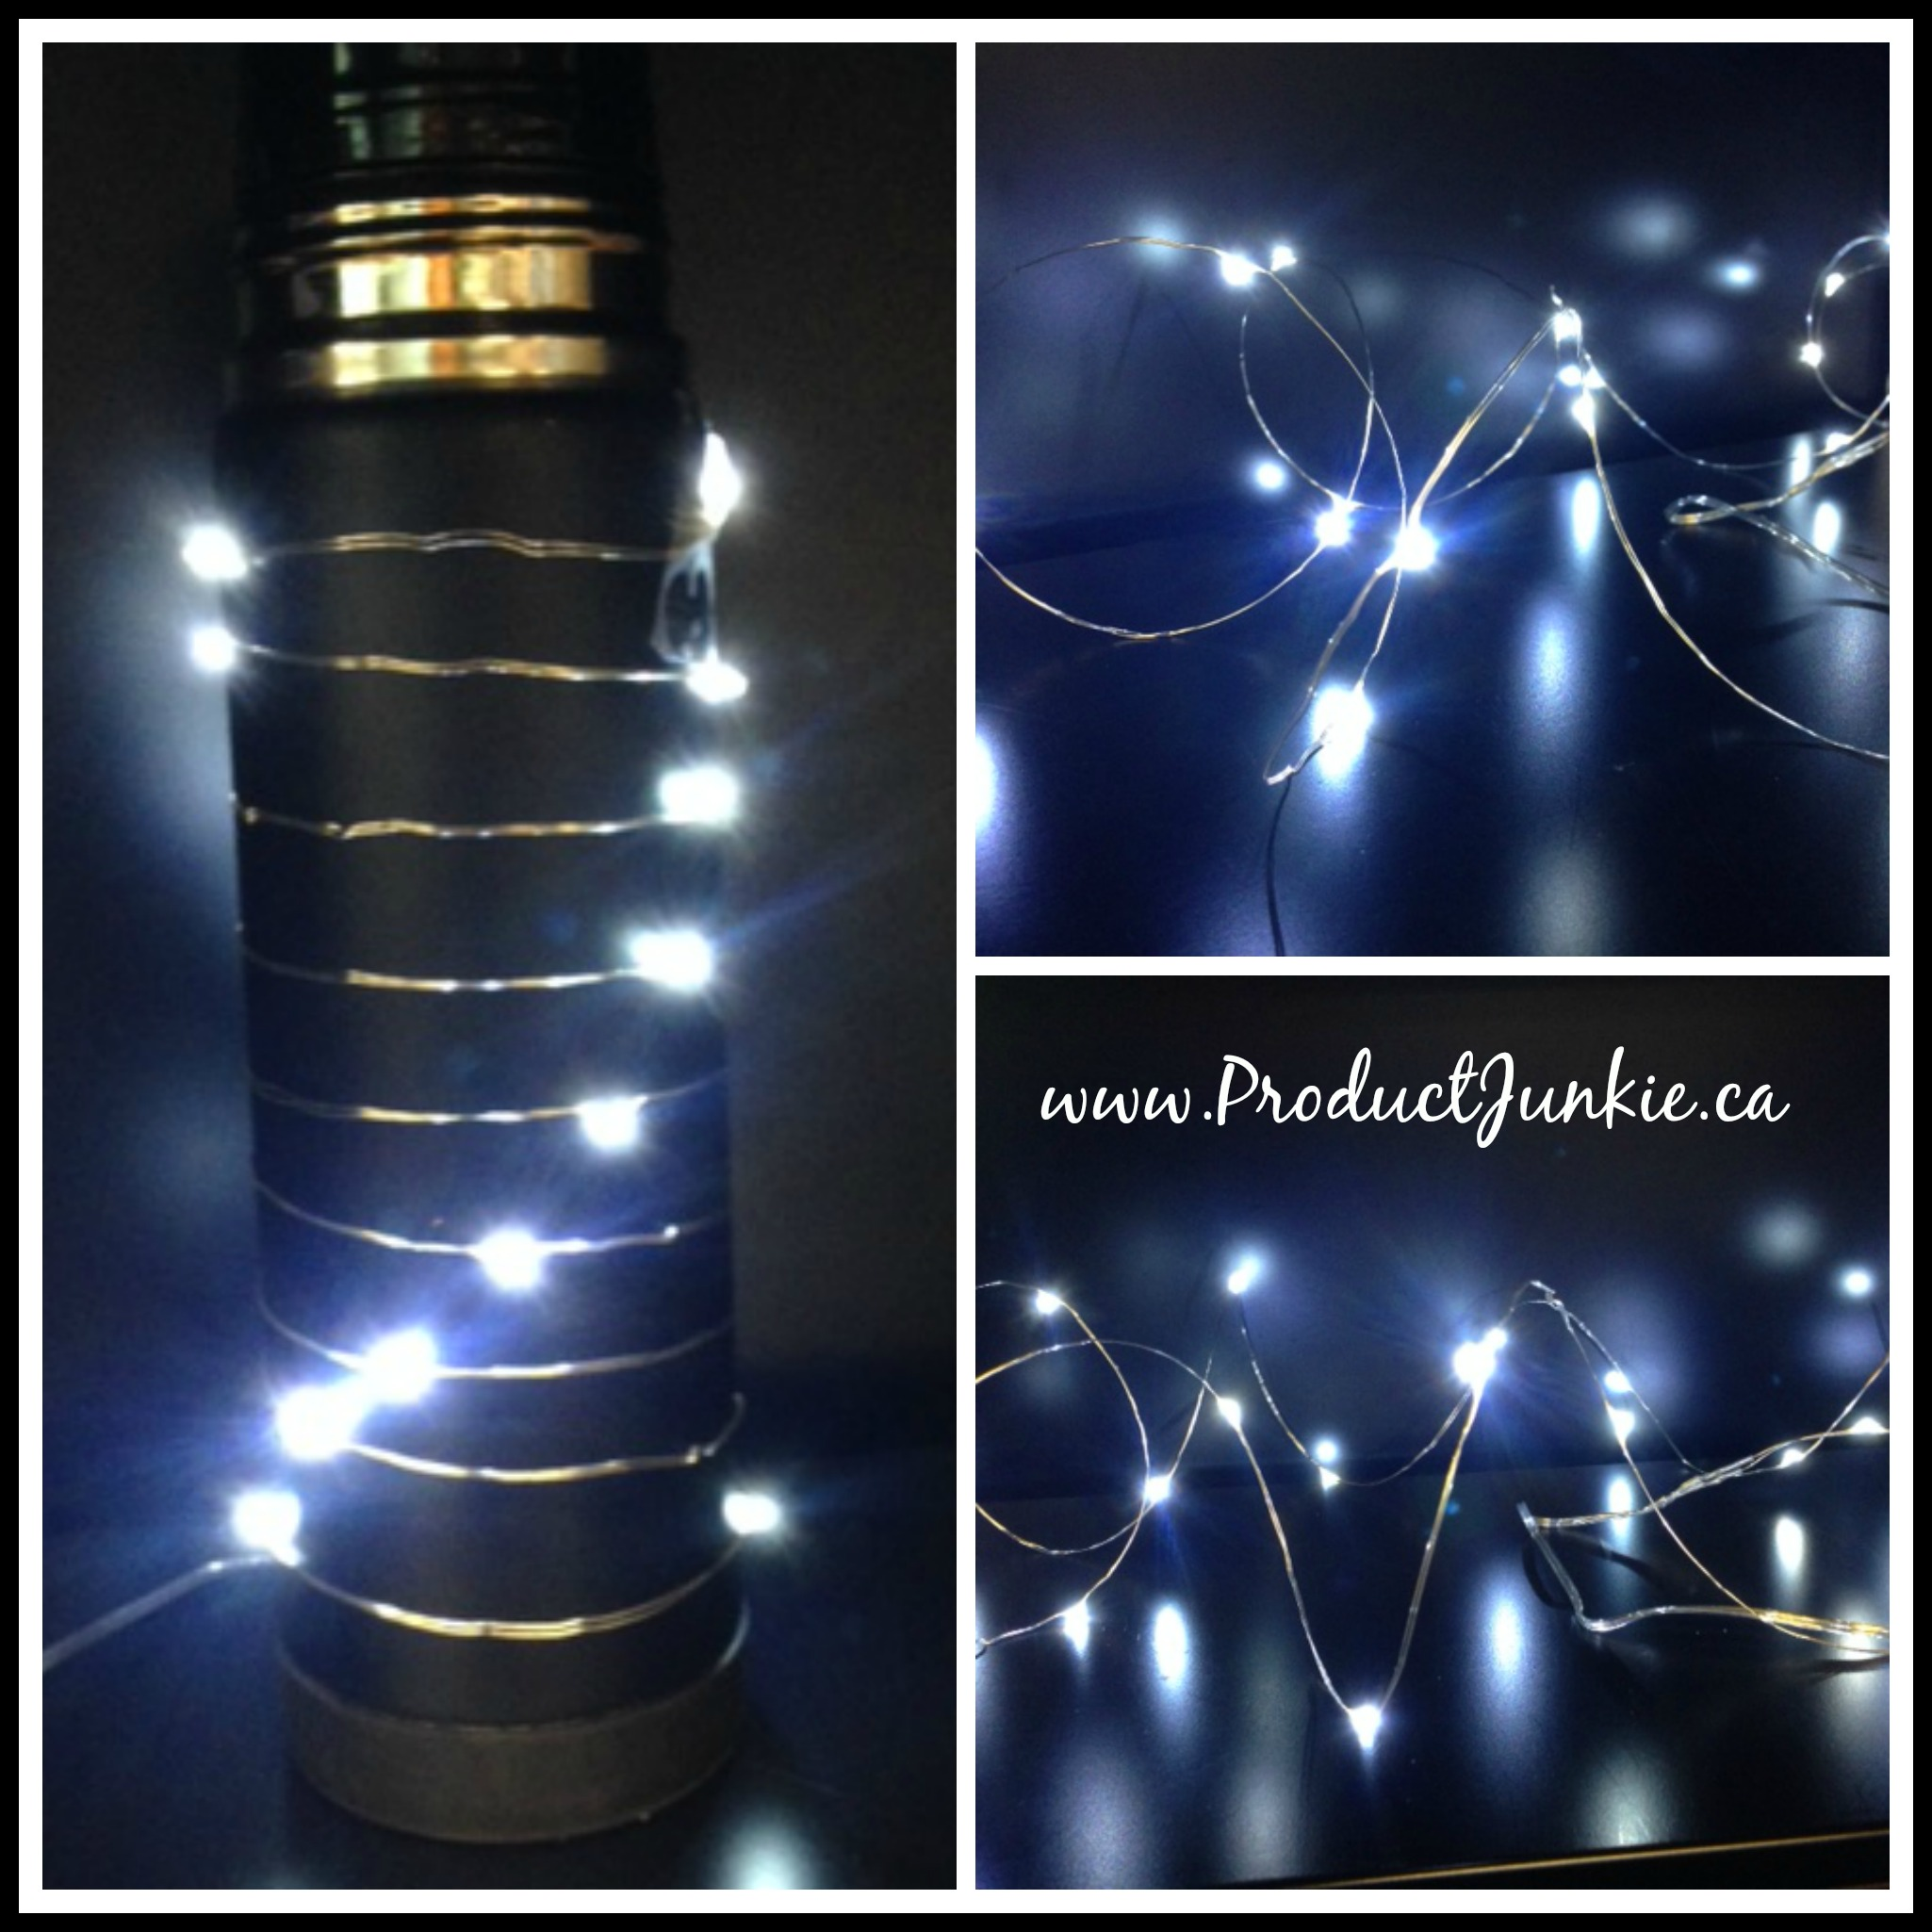 Rtgsproducts Micro Led String Lights Review